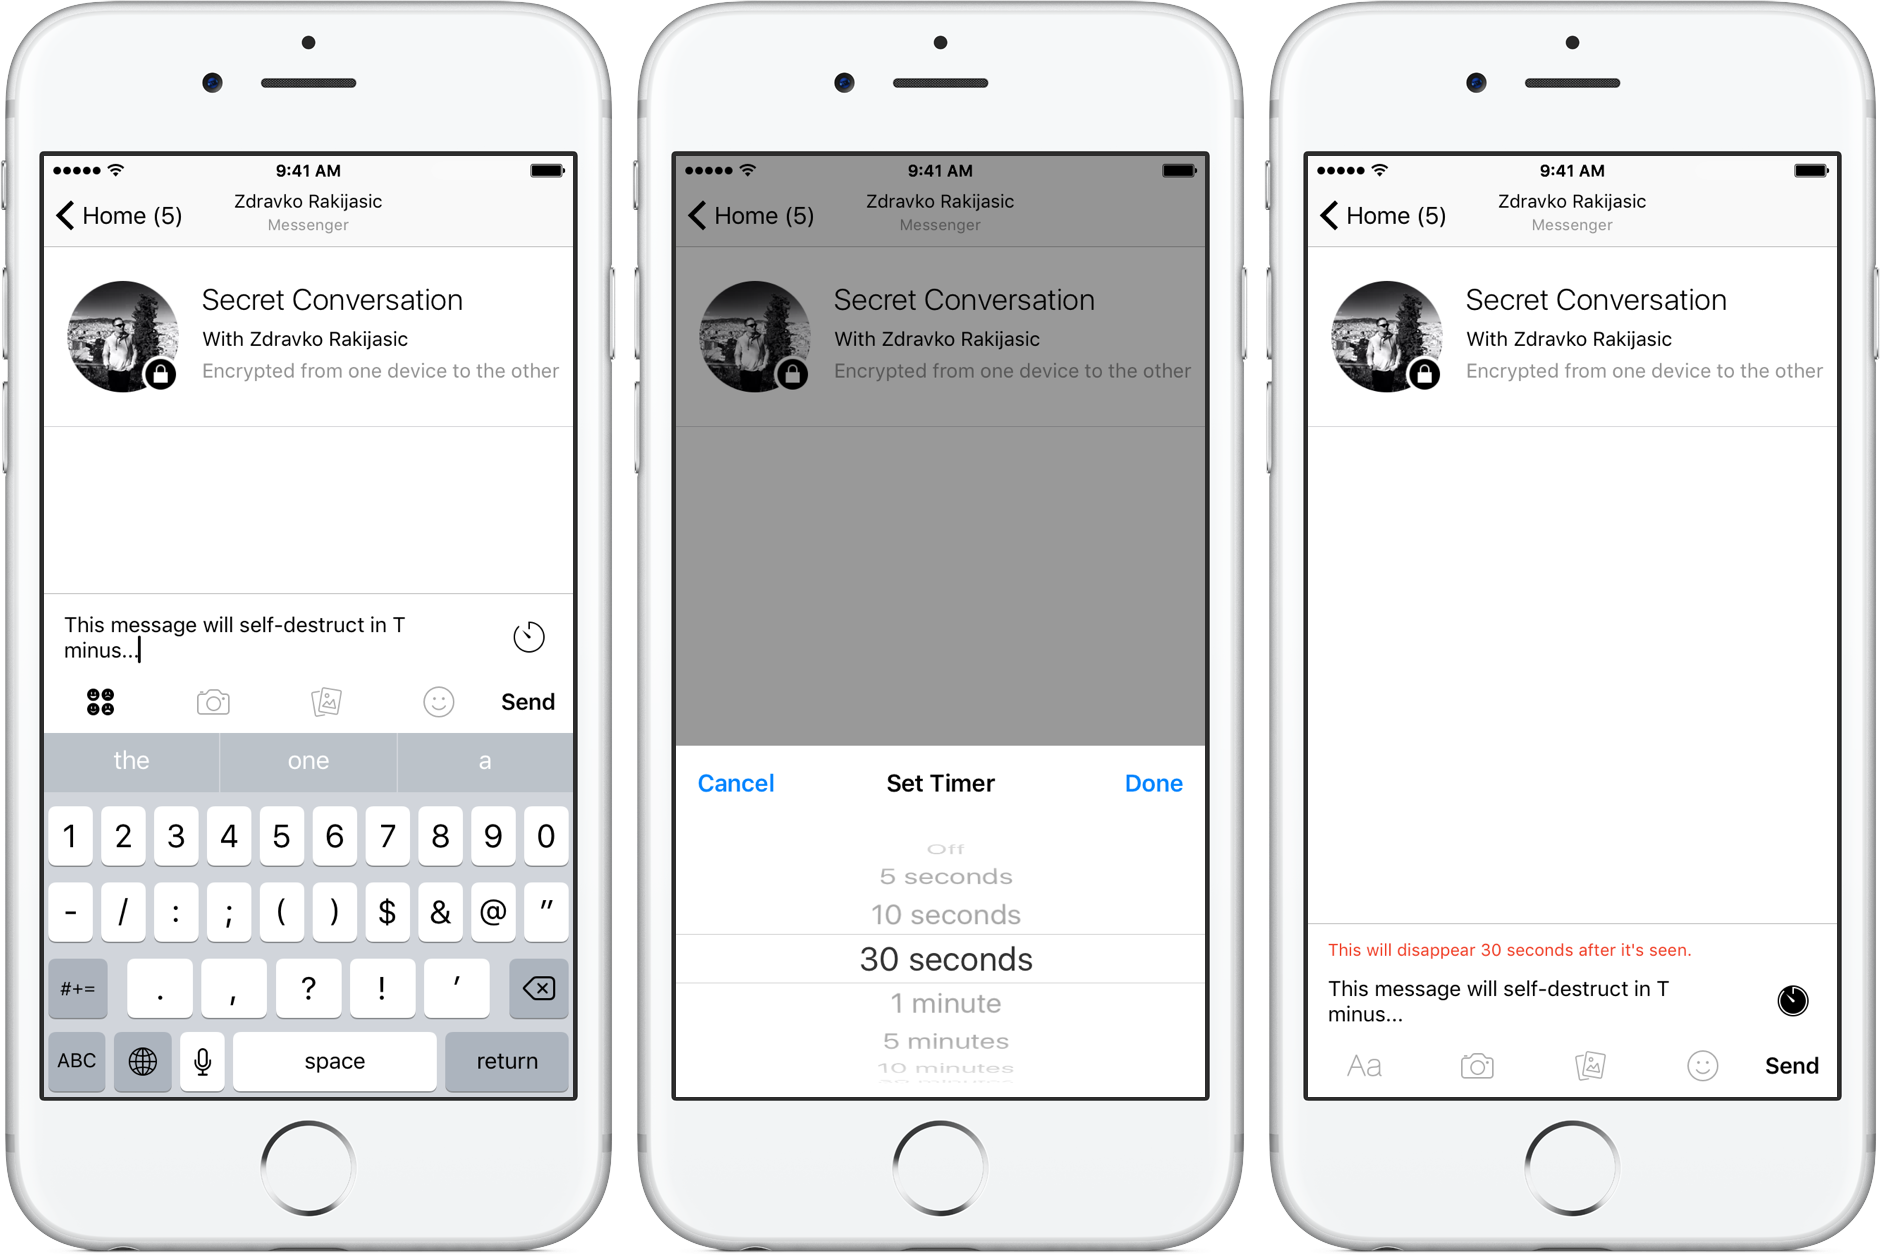 How to enable and use Secret Conversations in Facebook Messenger